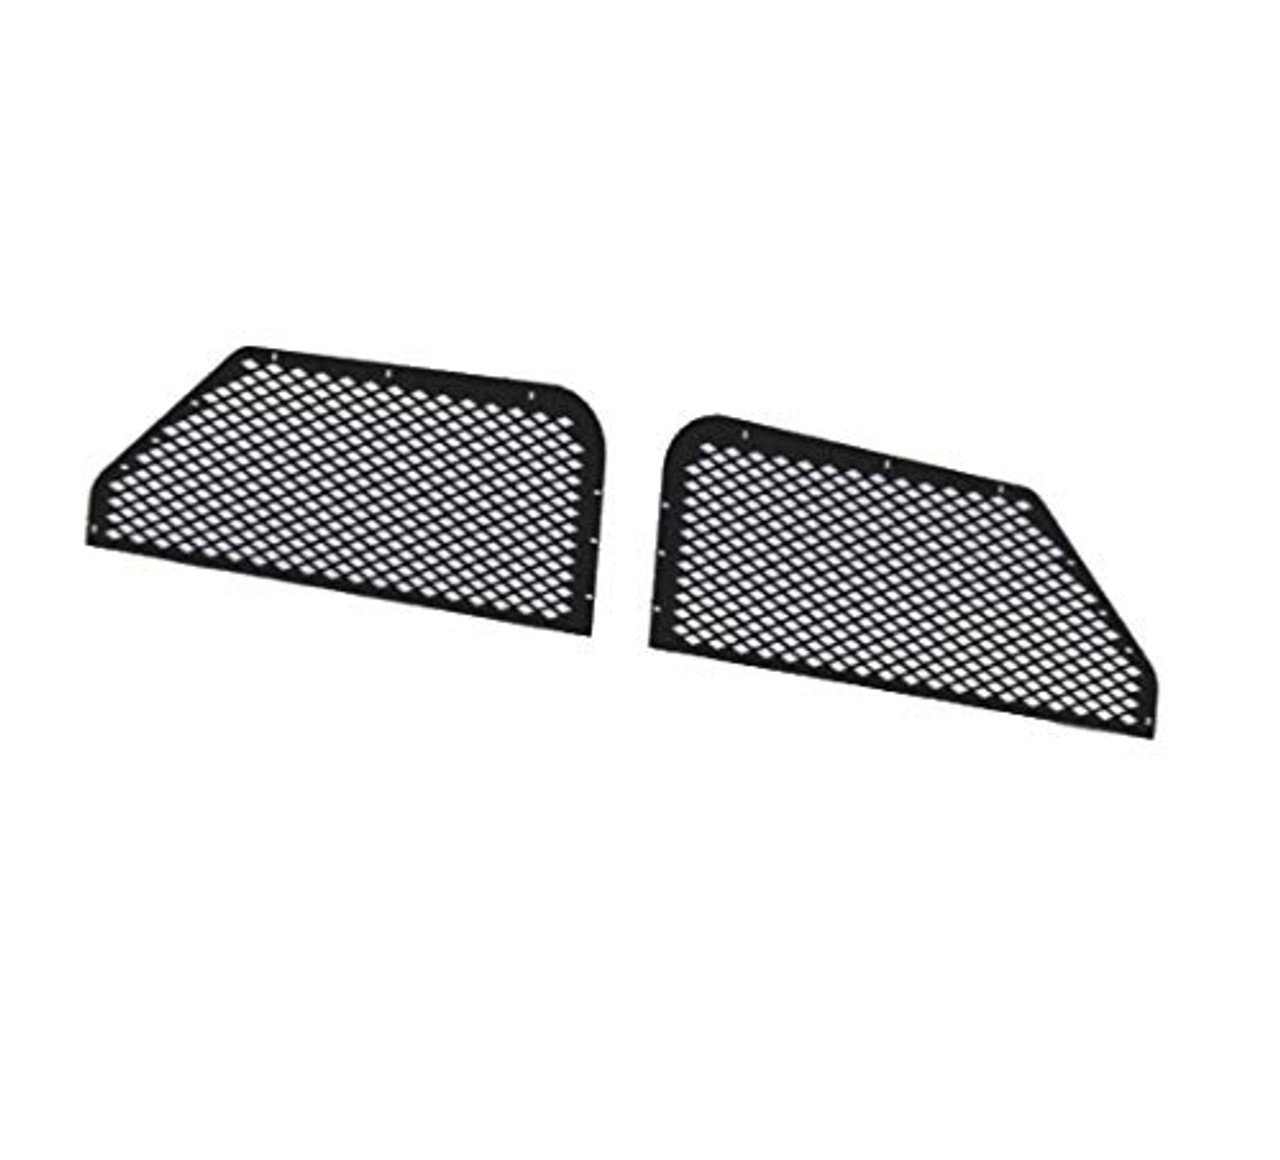 MESH Window Guards - 2020+ Ford Utility | 0309X97AT5B